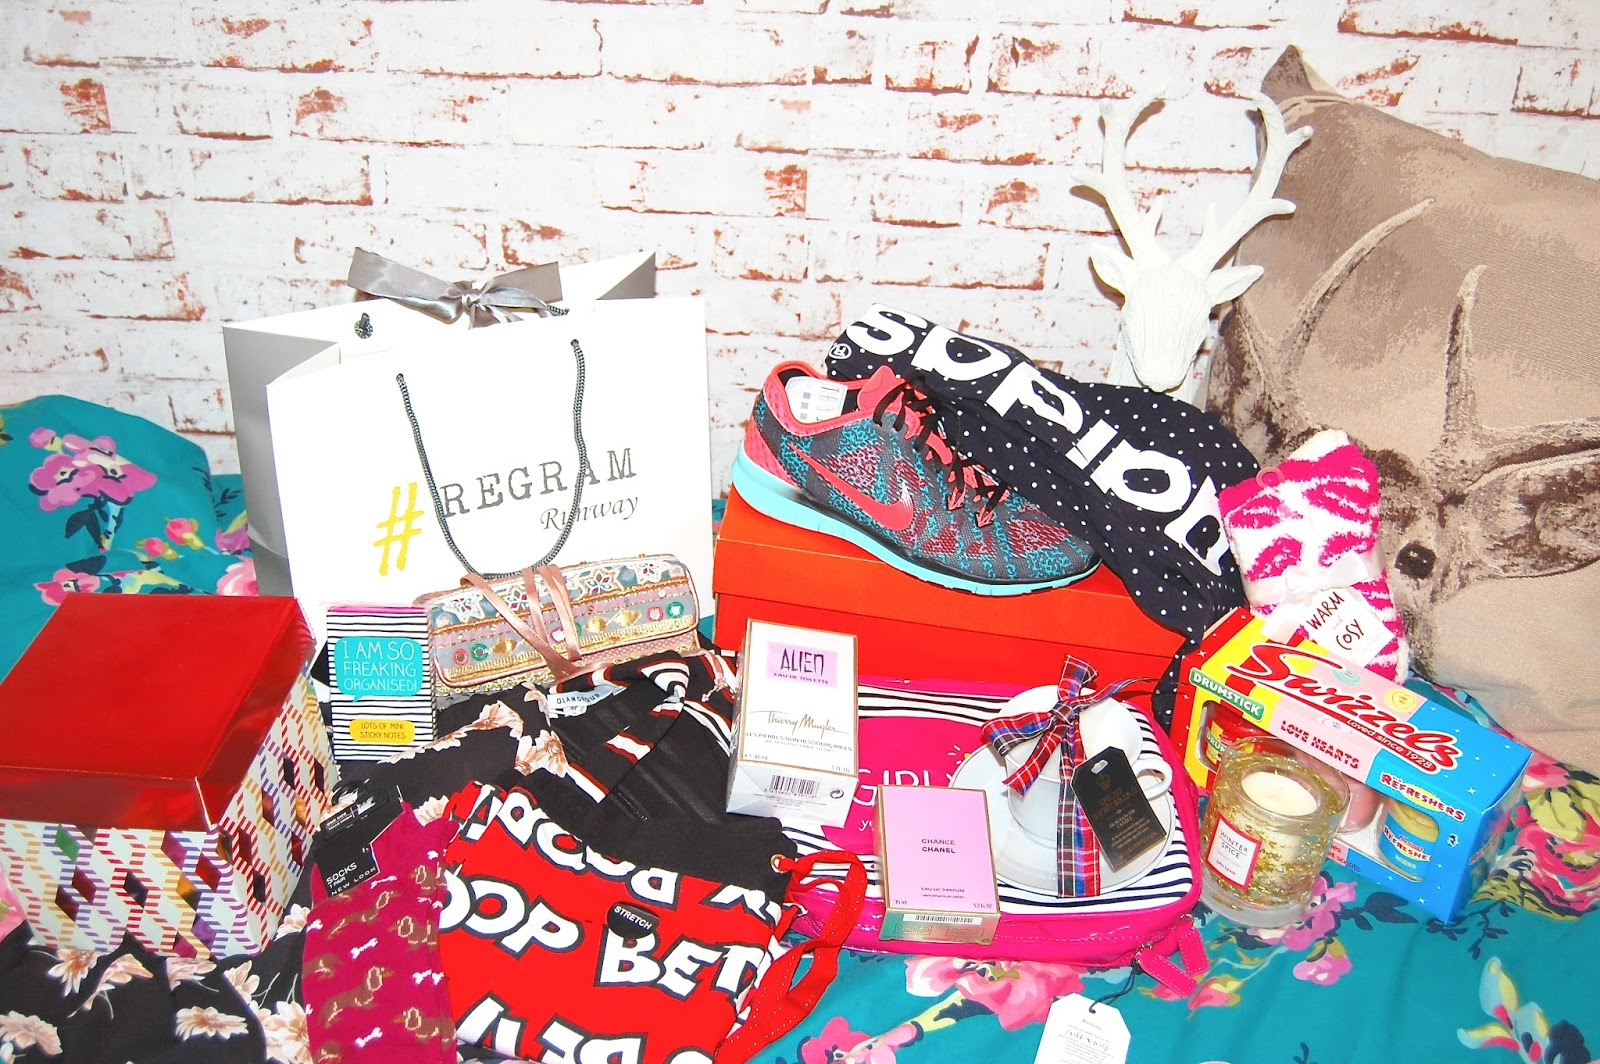 Christmas Presents, Regram Runway, Lush Cosmetics, Nike